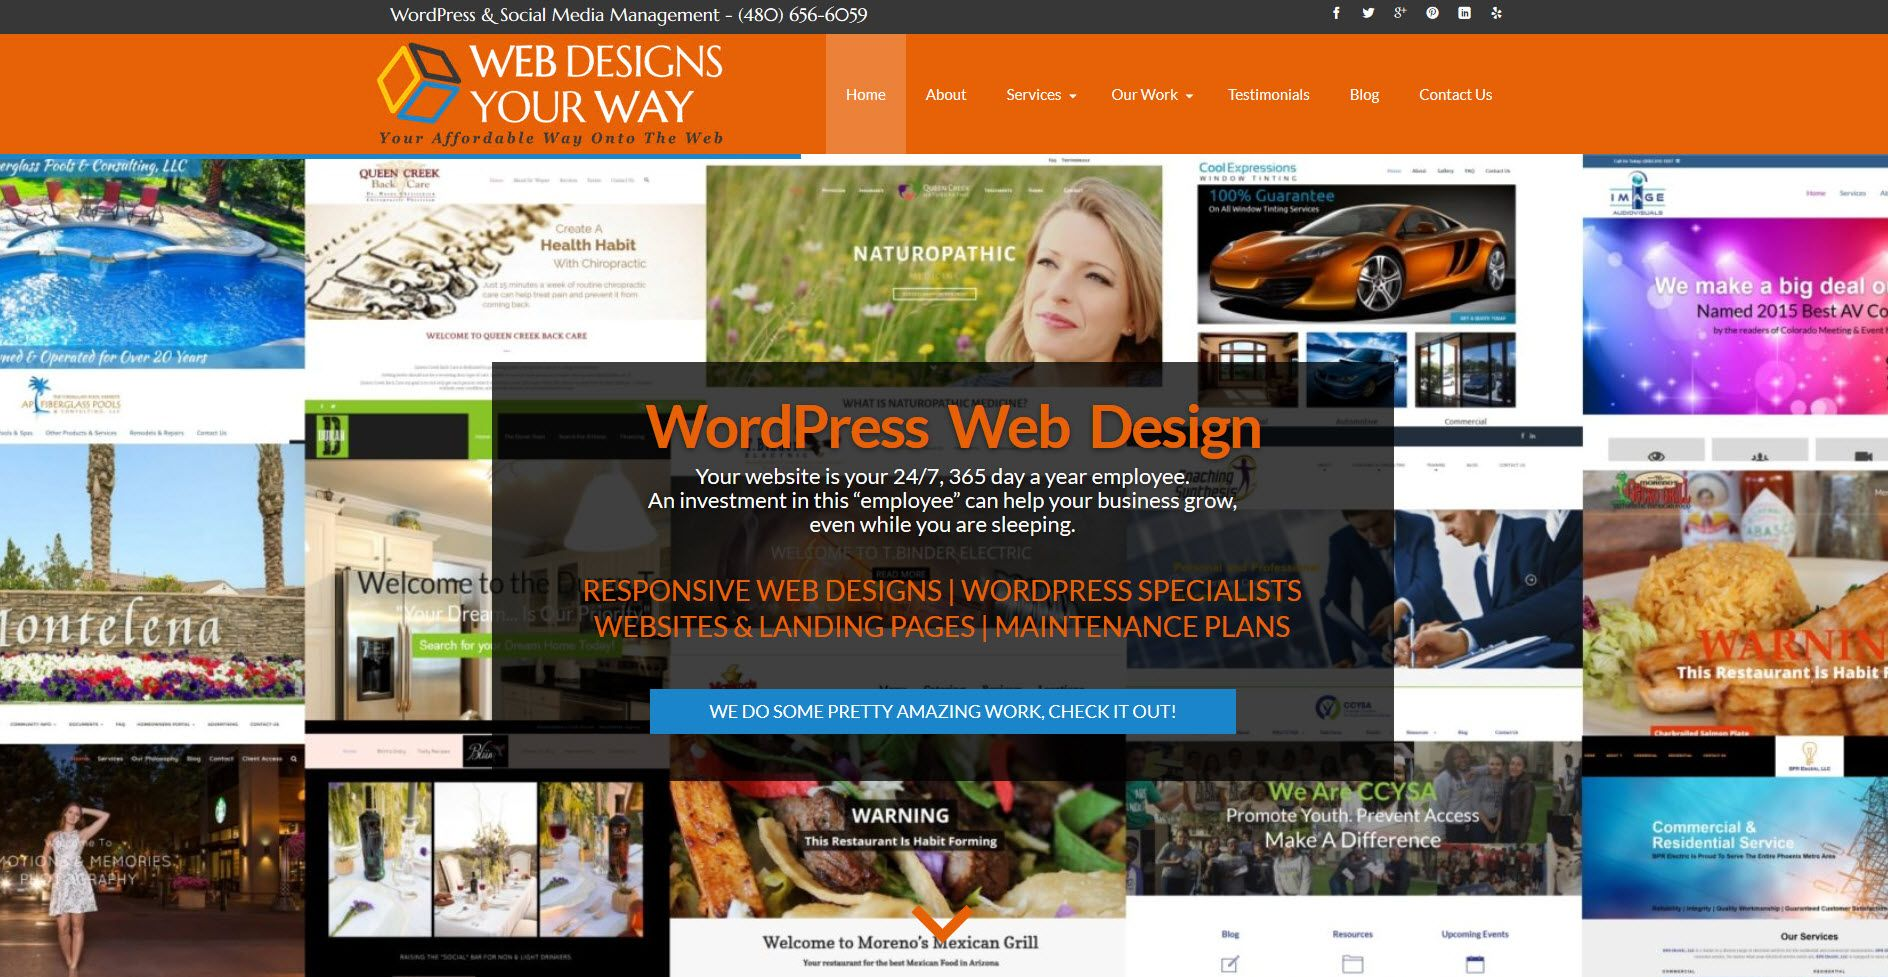 Web Designs Your Way Located In Chandler Az Is A Search Engine Friendly Website Design Company Special Website Design Company Web Design Wordpress Web Design